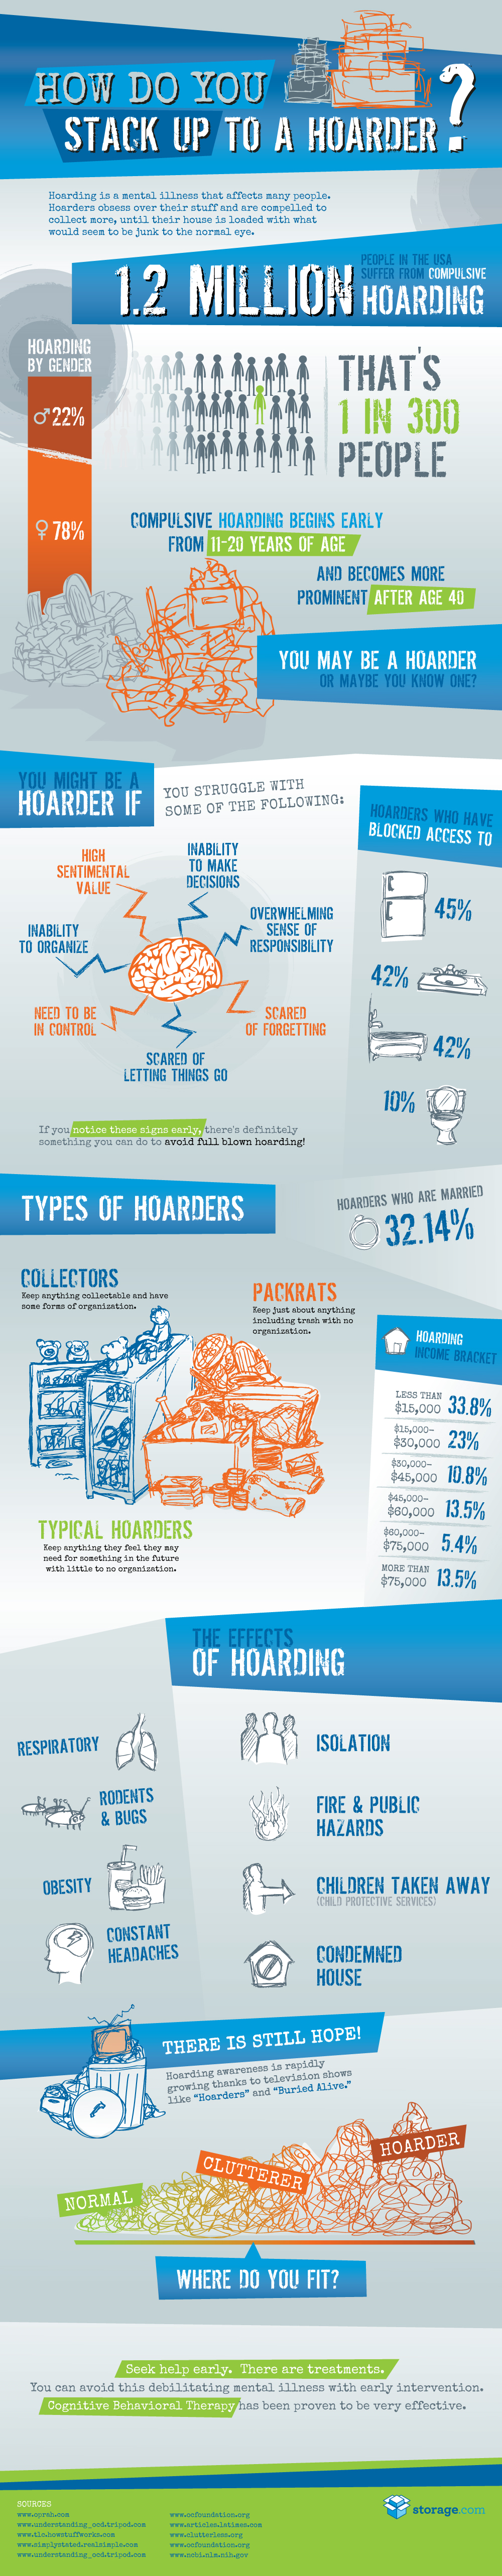 How Do You Stack Up to a Hoarder?